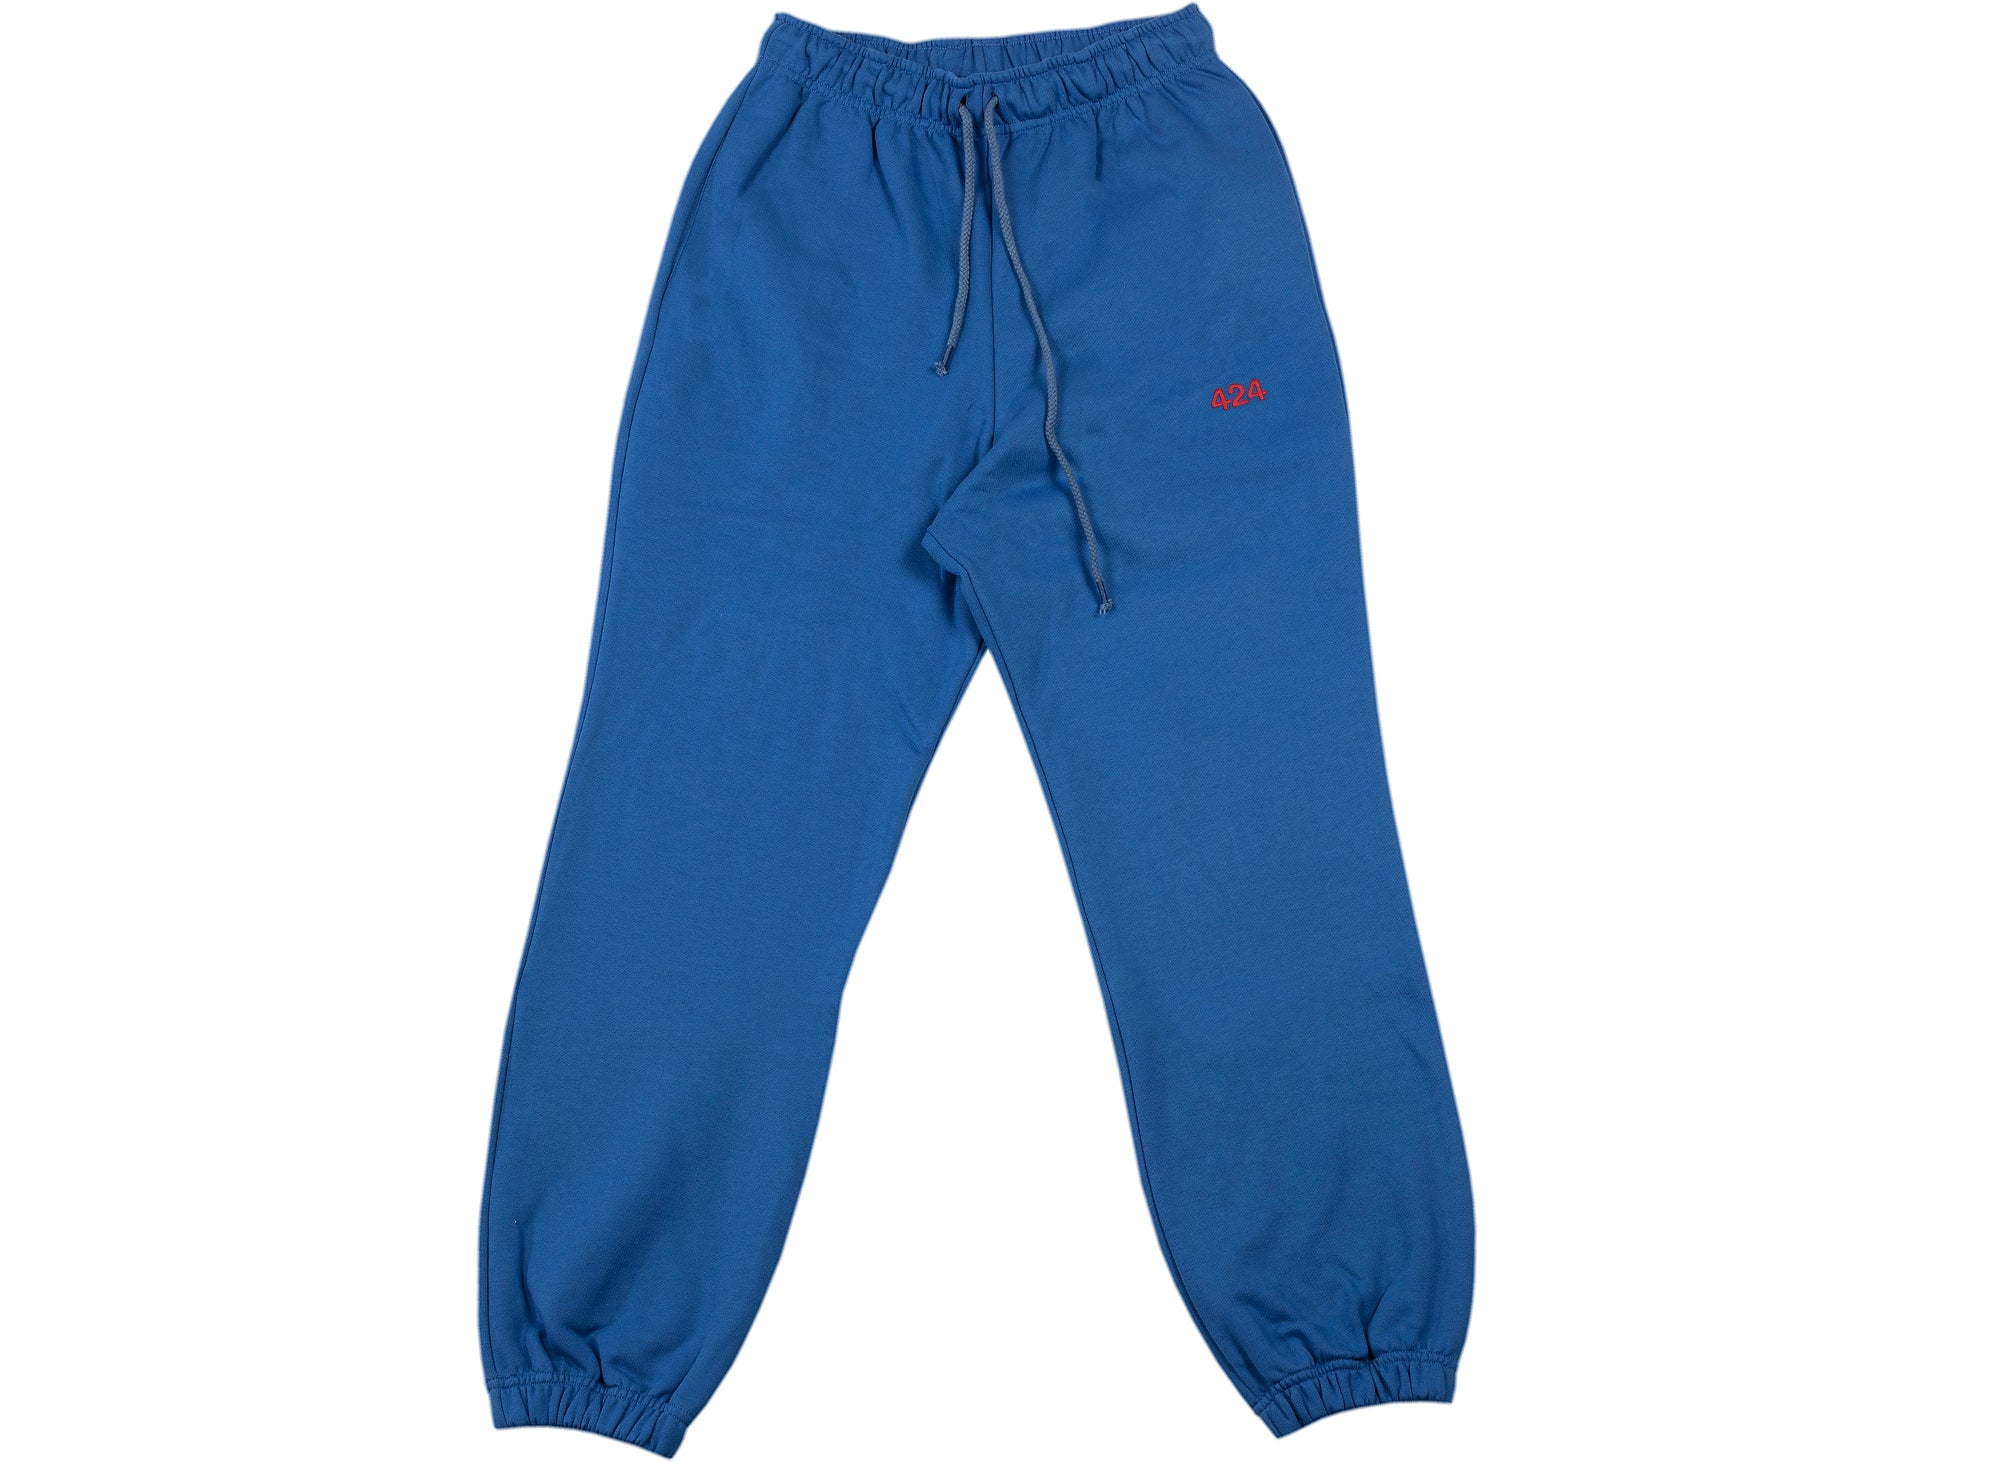 424 Logo Sweatpants in Blue